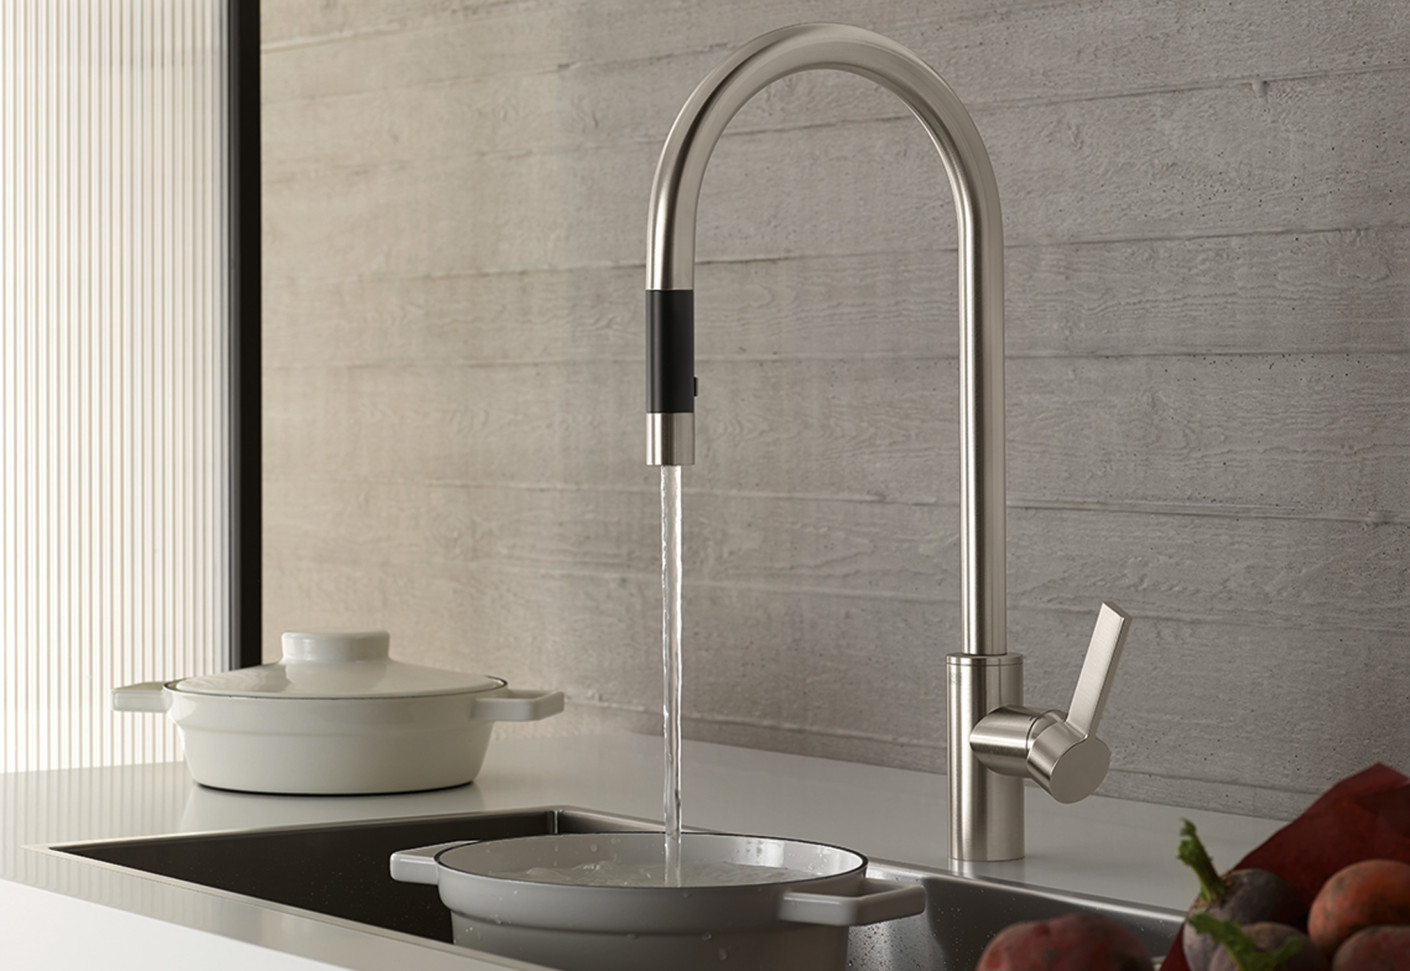 Dornbracht Shower | Dornbracht Kitchen Faucet | Dornbracht Bathroom Faucets